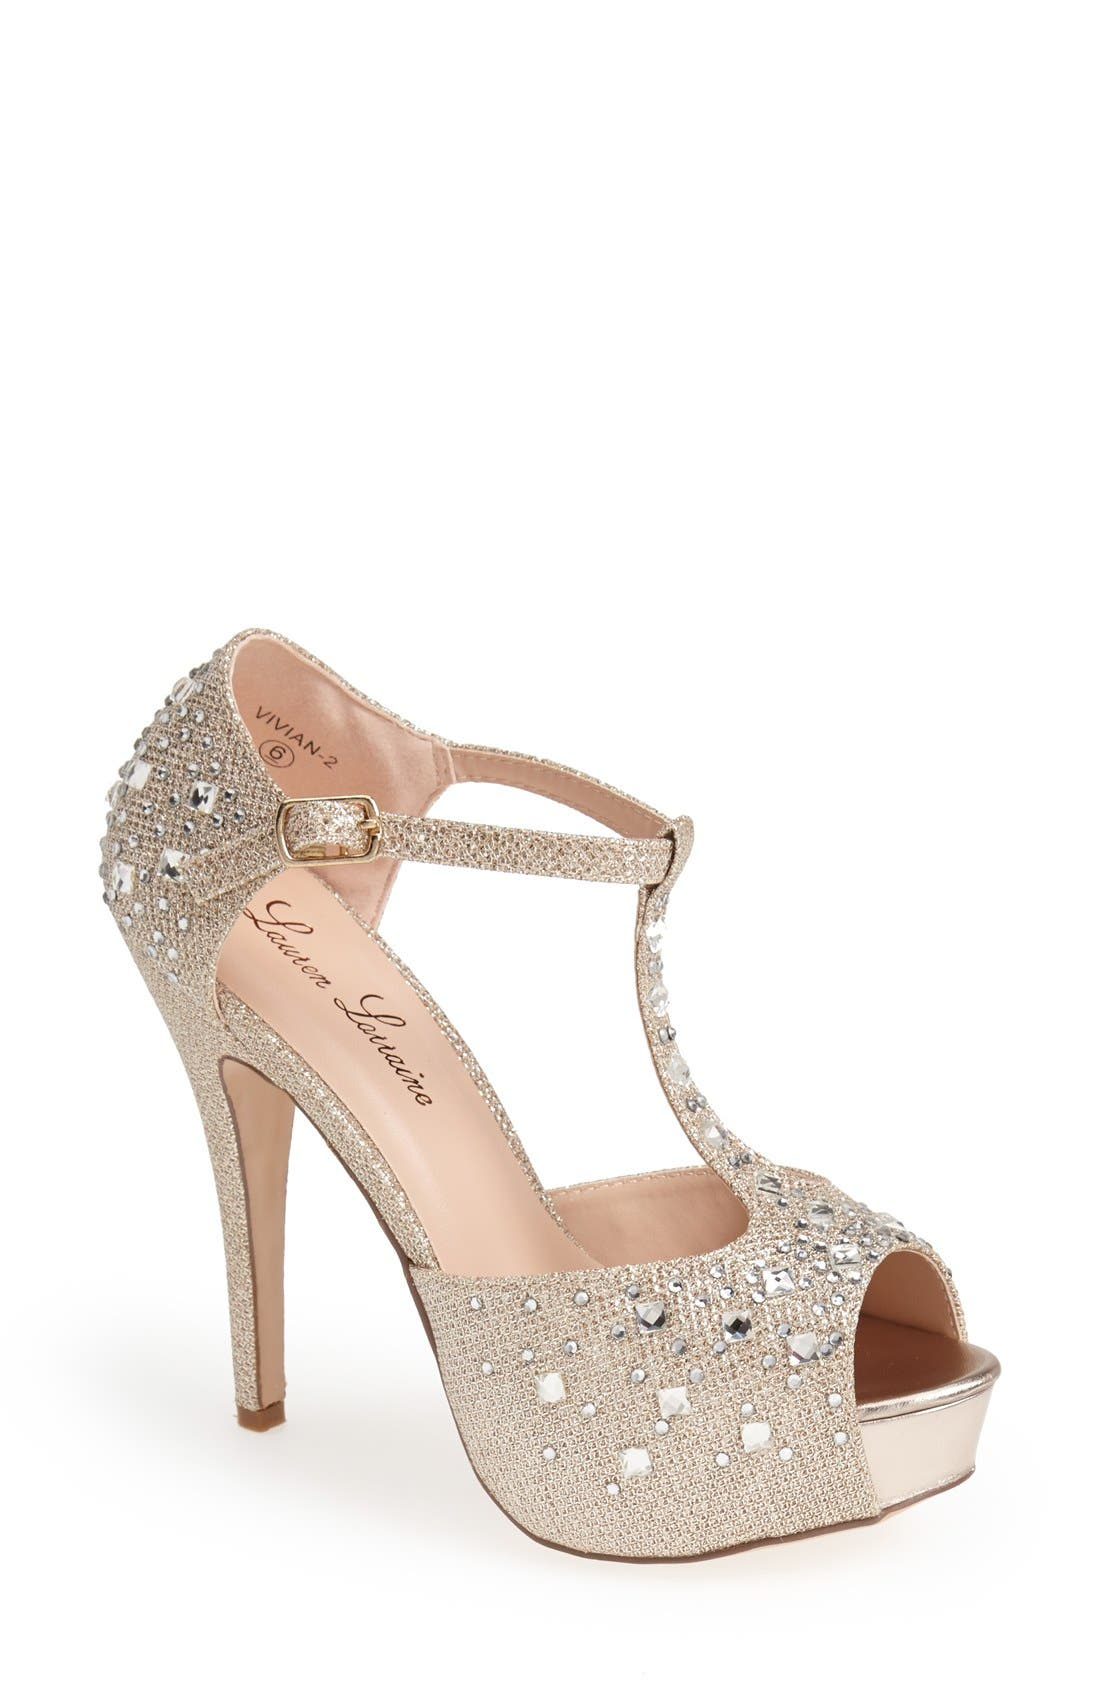 Alternate Image 1 Selected - Lauren Lorraine 'Vivian' Crystal Platform Pump (Women)